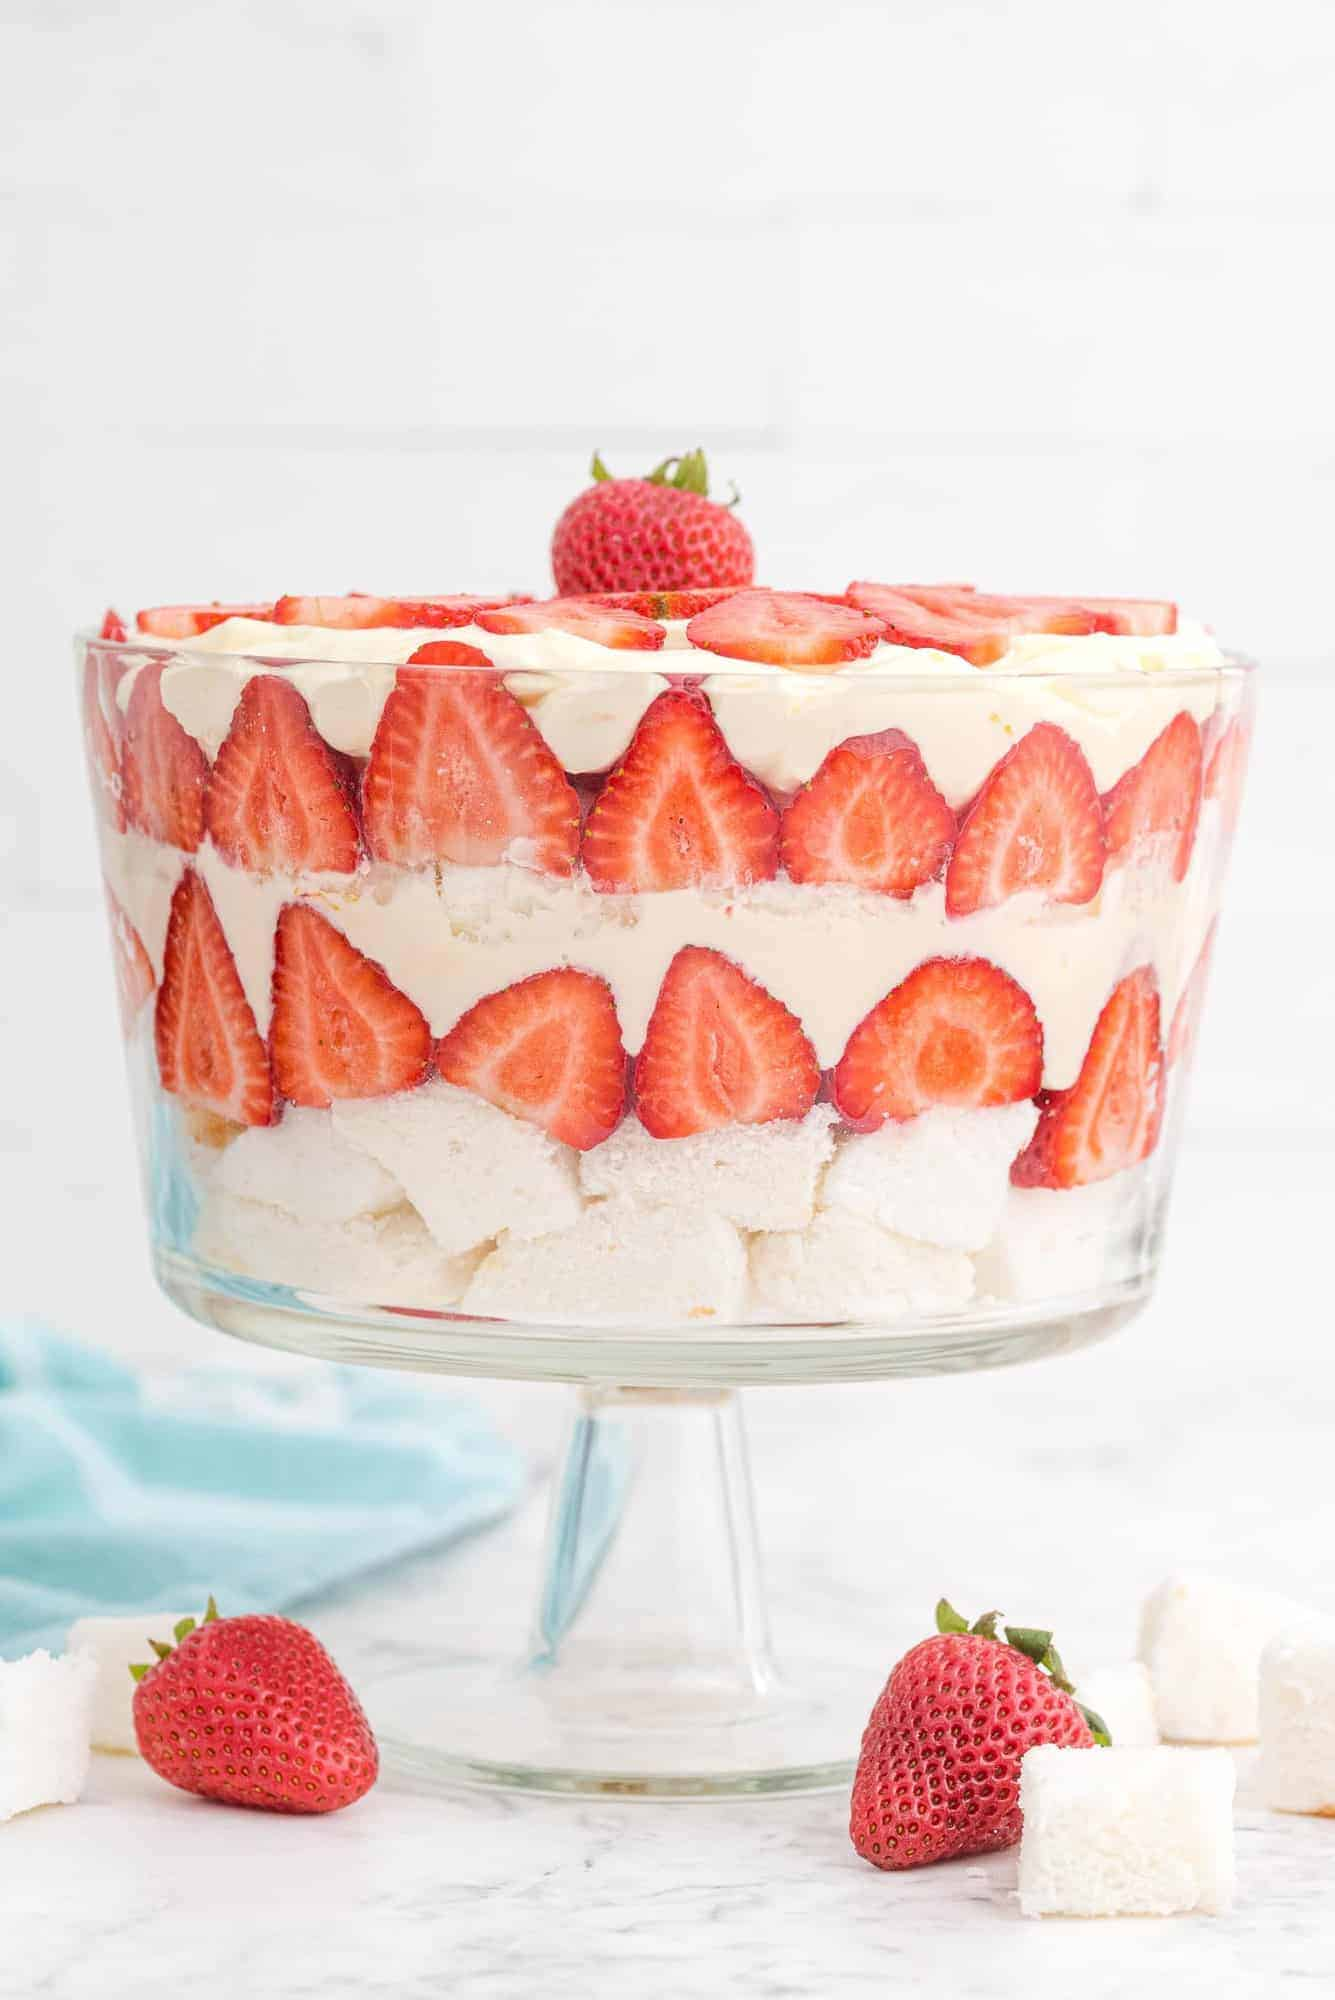 Strawberry trifle in clear glass trifle bowl against white background.